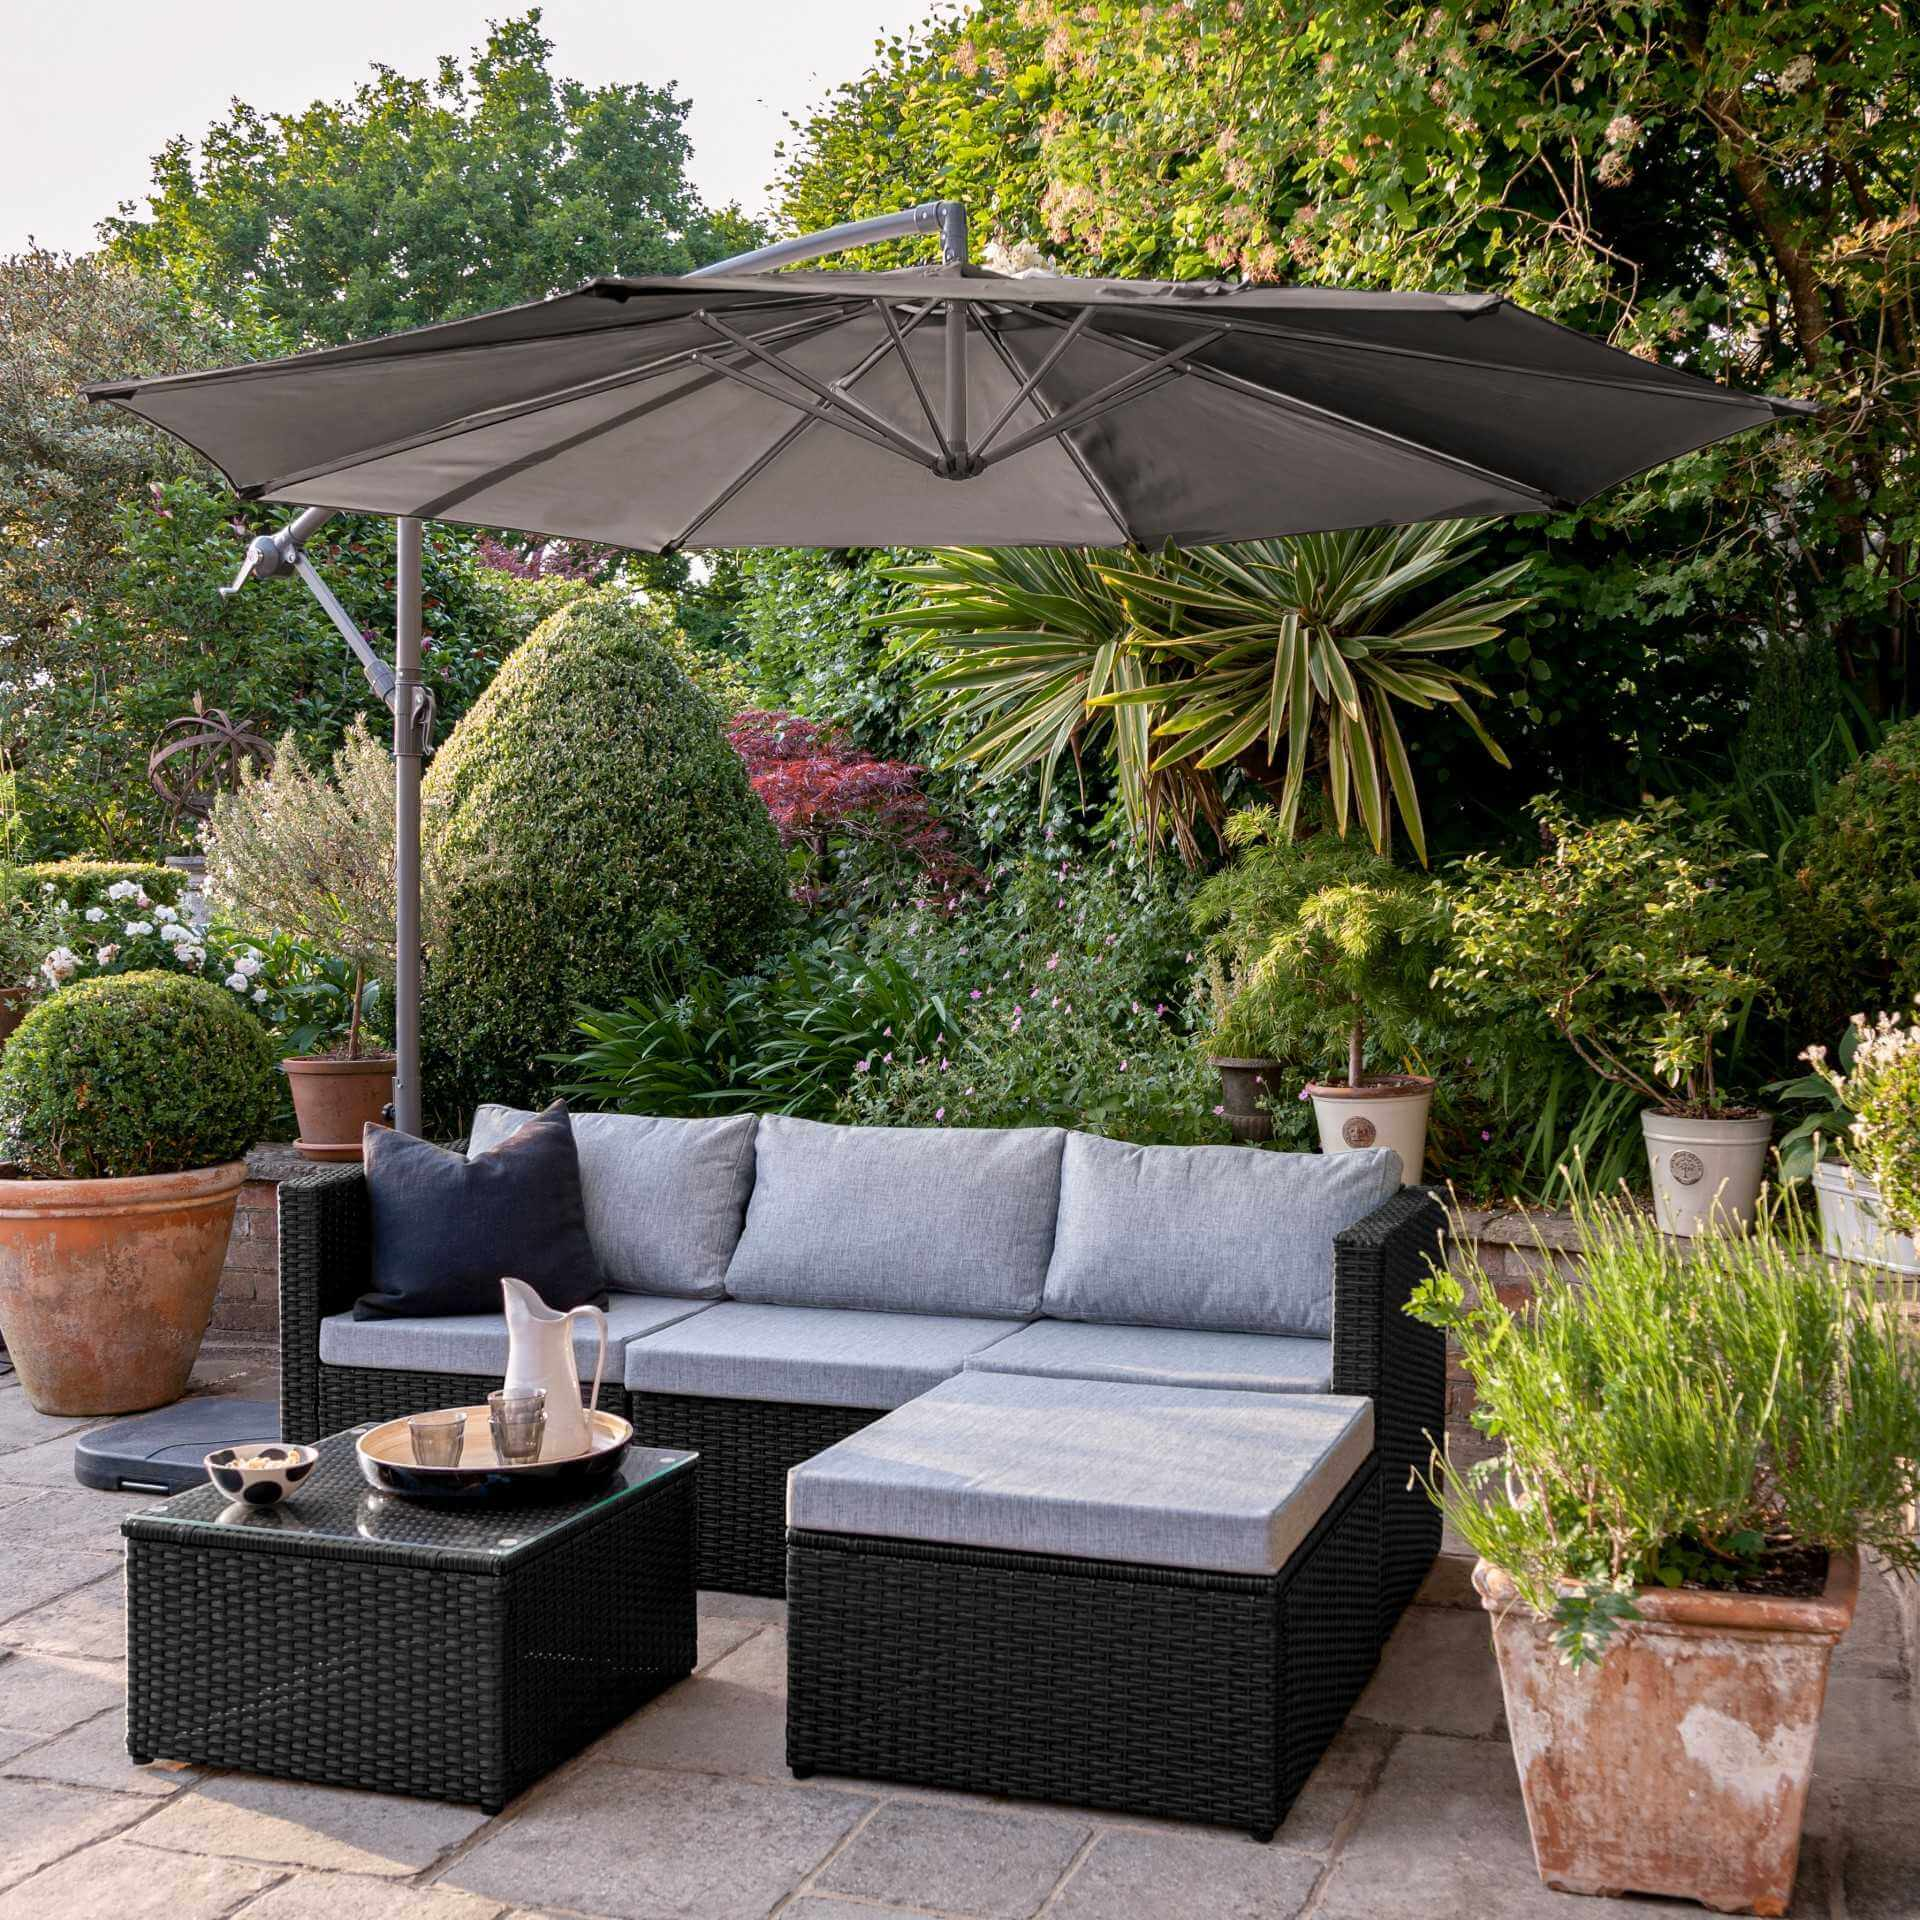 4 Seater Rattan Corner Sofa Set with Lean Over Parasol and Base - Black Weave